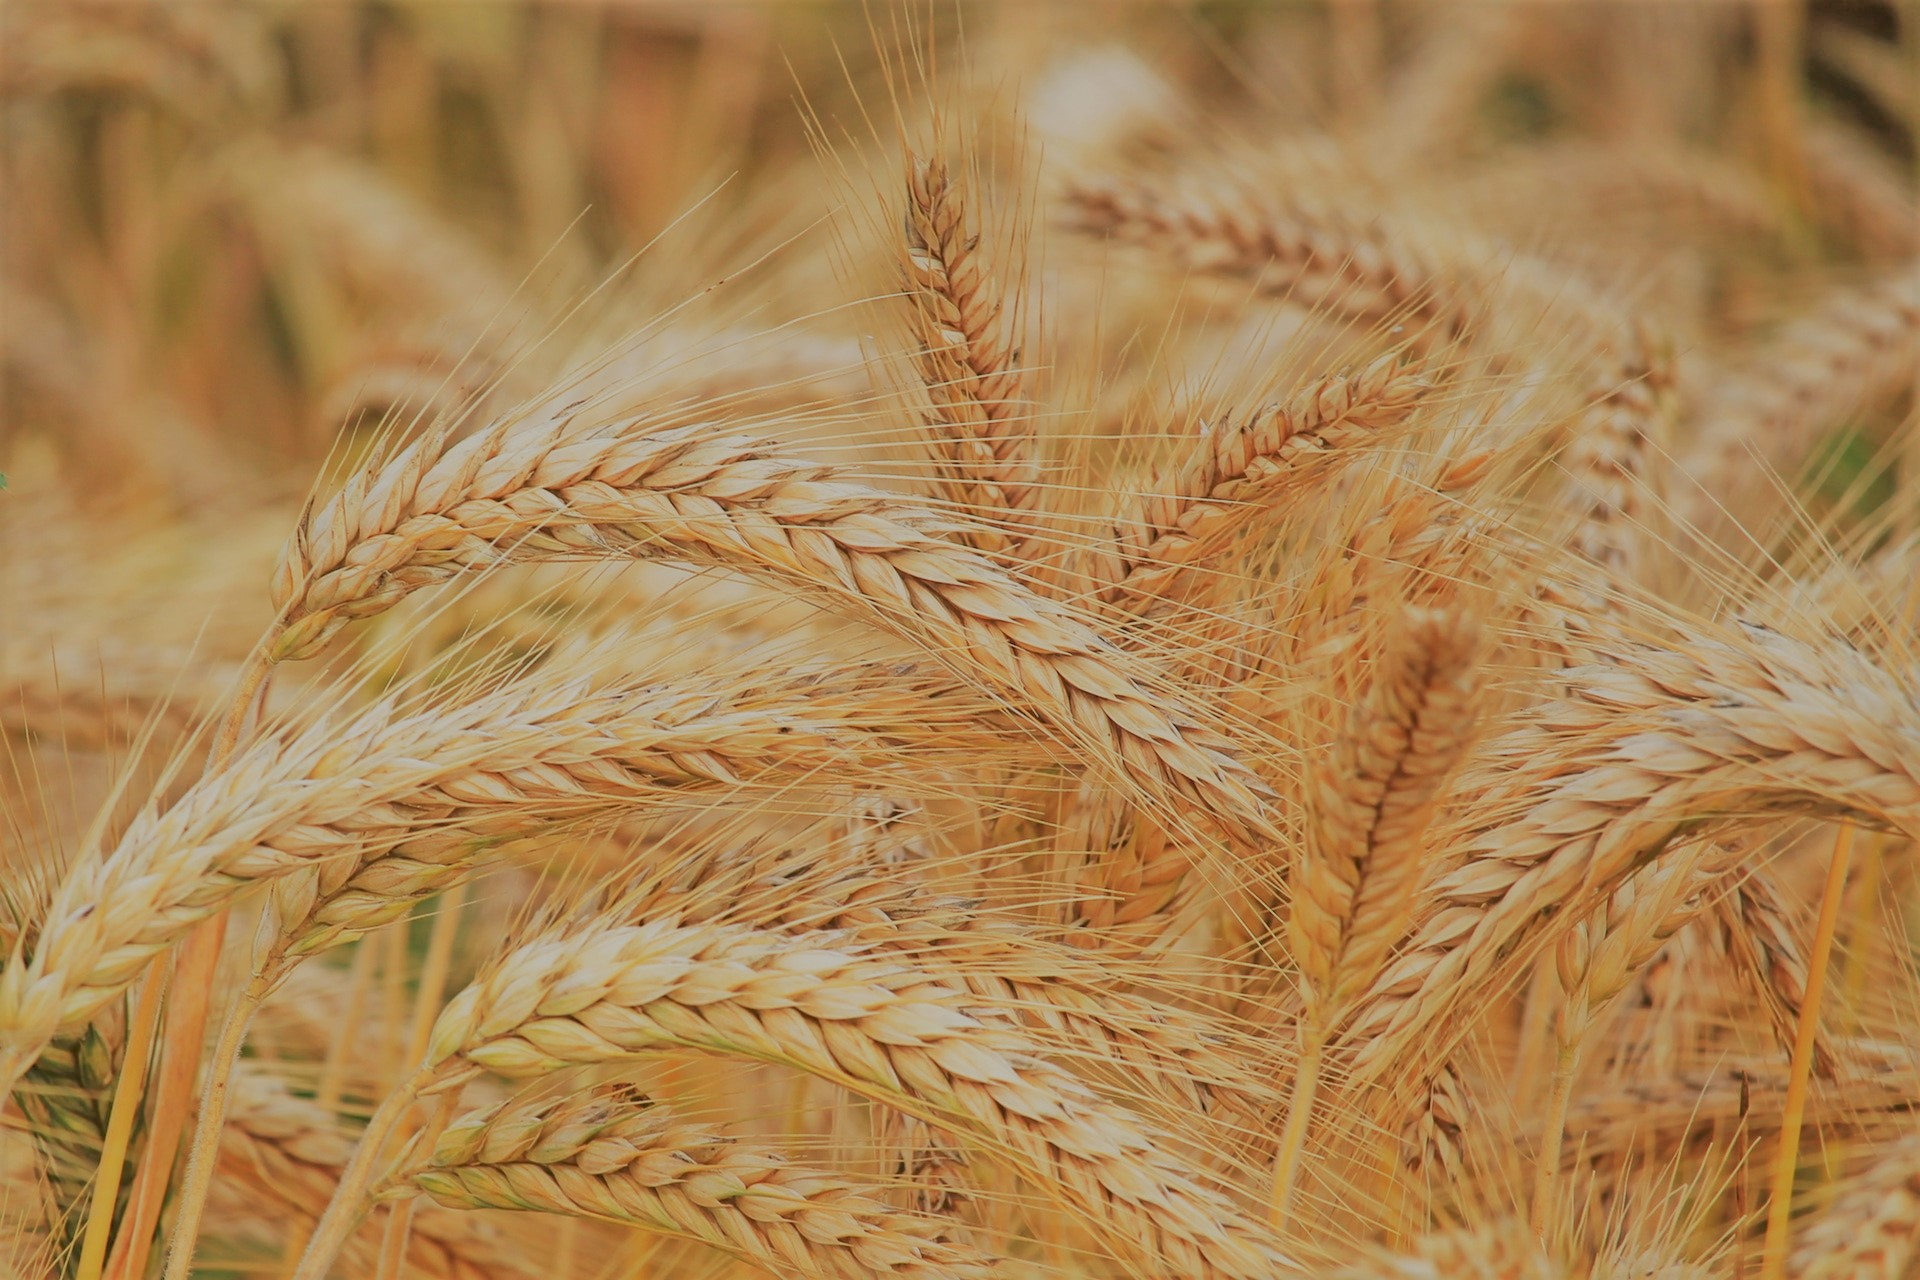 Why we don't eat wheat